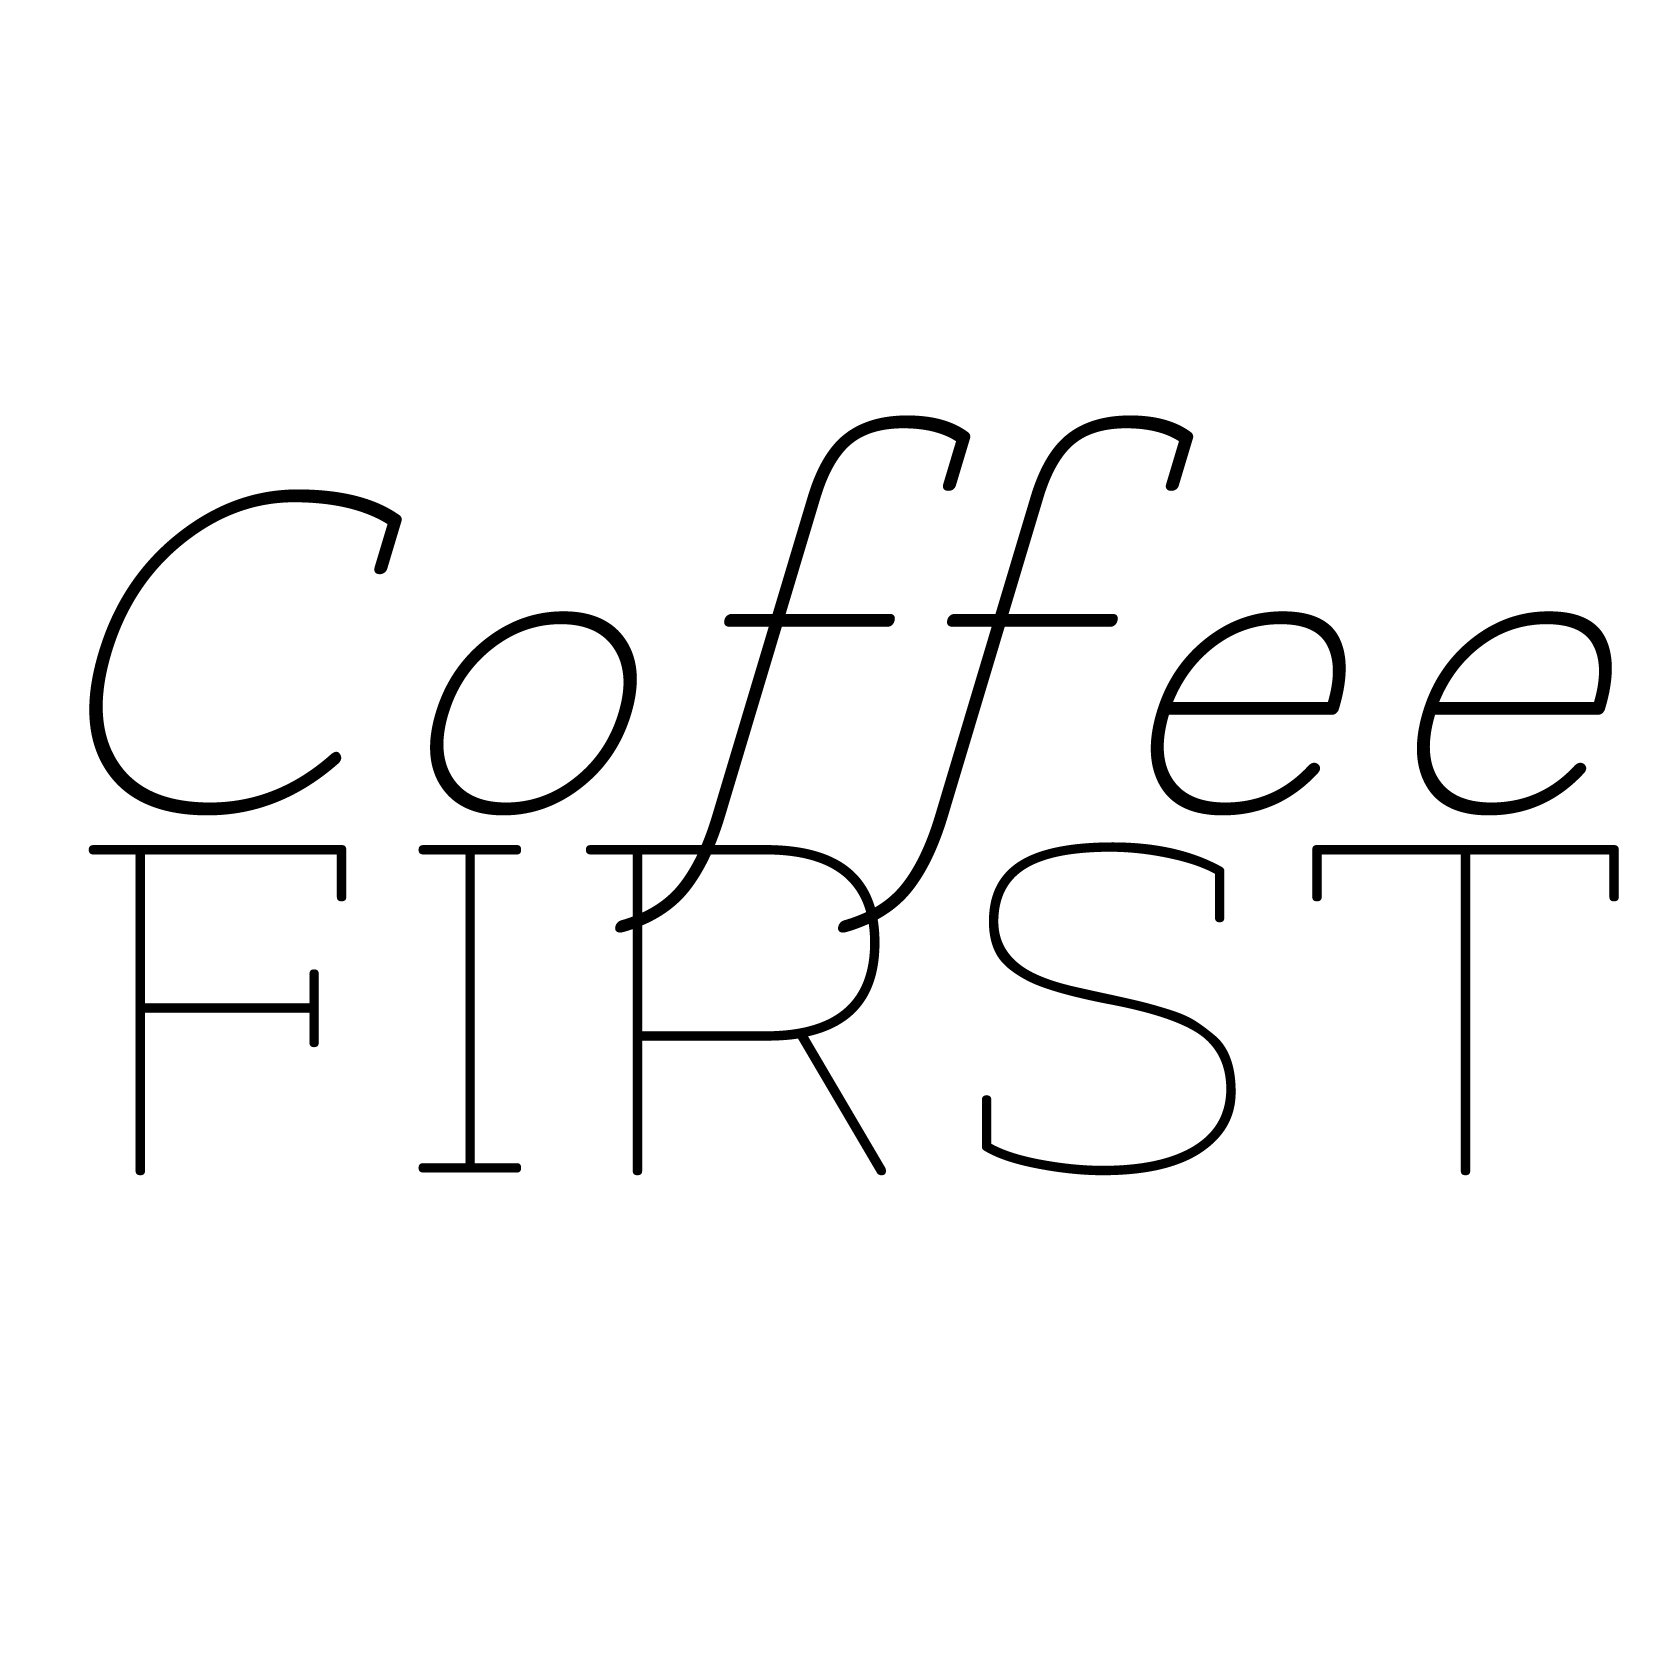 Coffee First Quote - Vinyl Wall Art Decal for Homes, Offices, Kids Rooms, Nurseries, Schools, High Schools, Colleges, Universities, Interior Designers, Architects, Remodelers